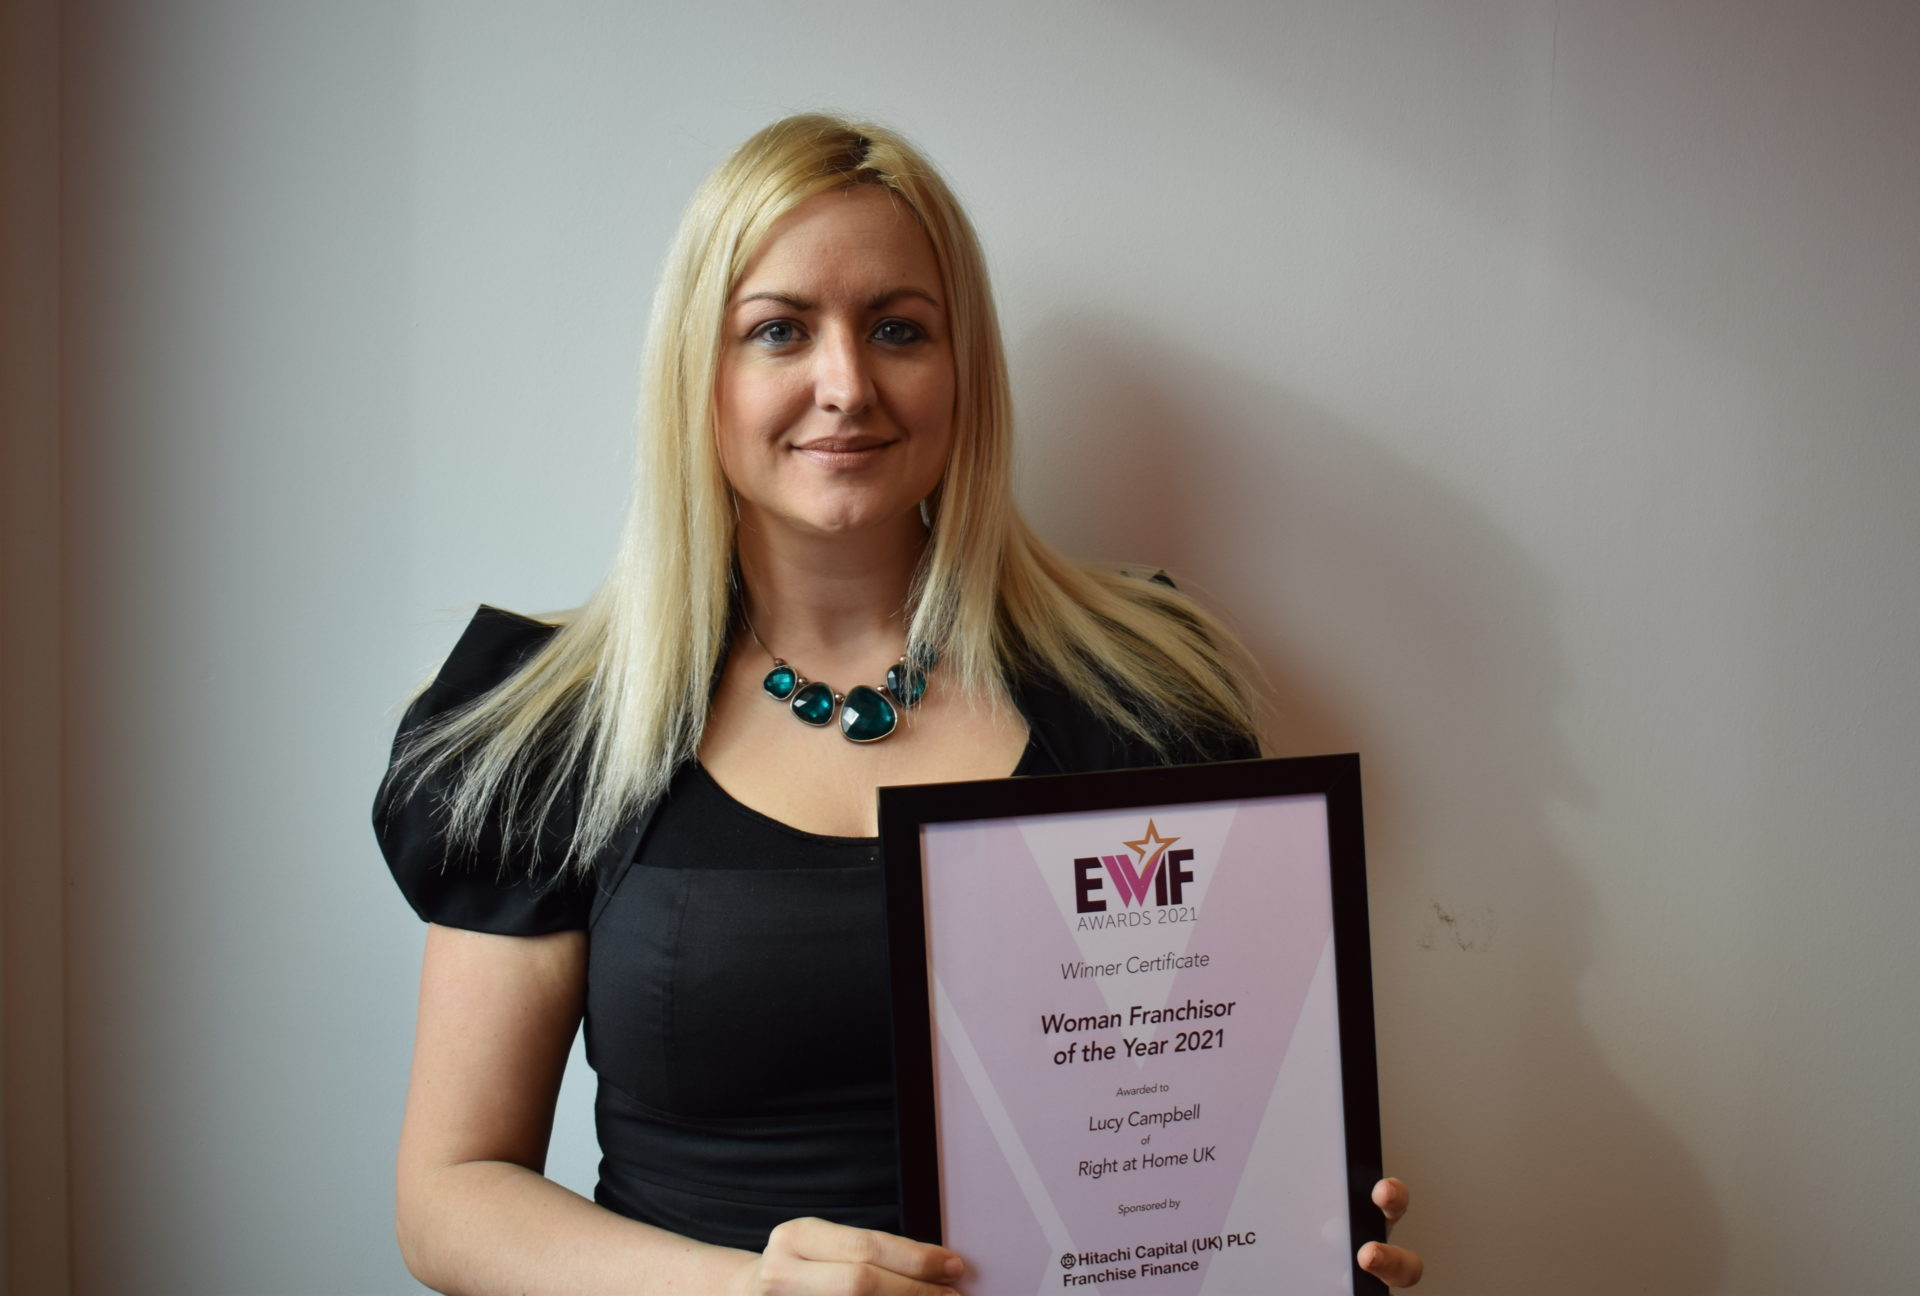 Lucy Campbell EWIF Woman Franchisor of the Year